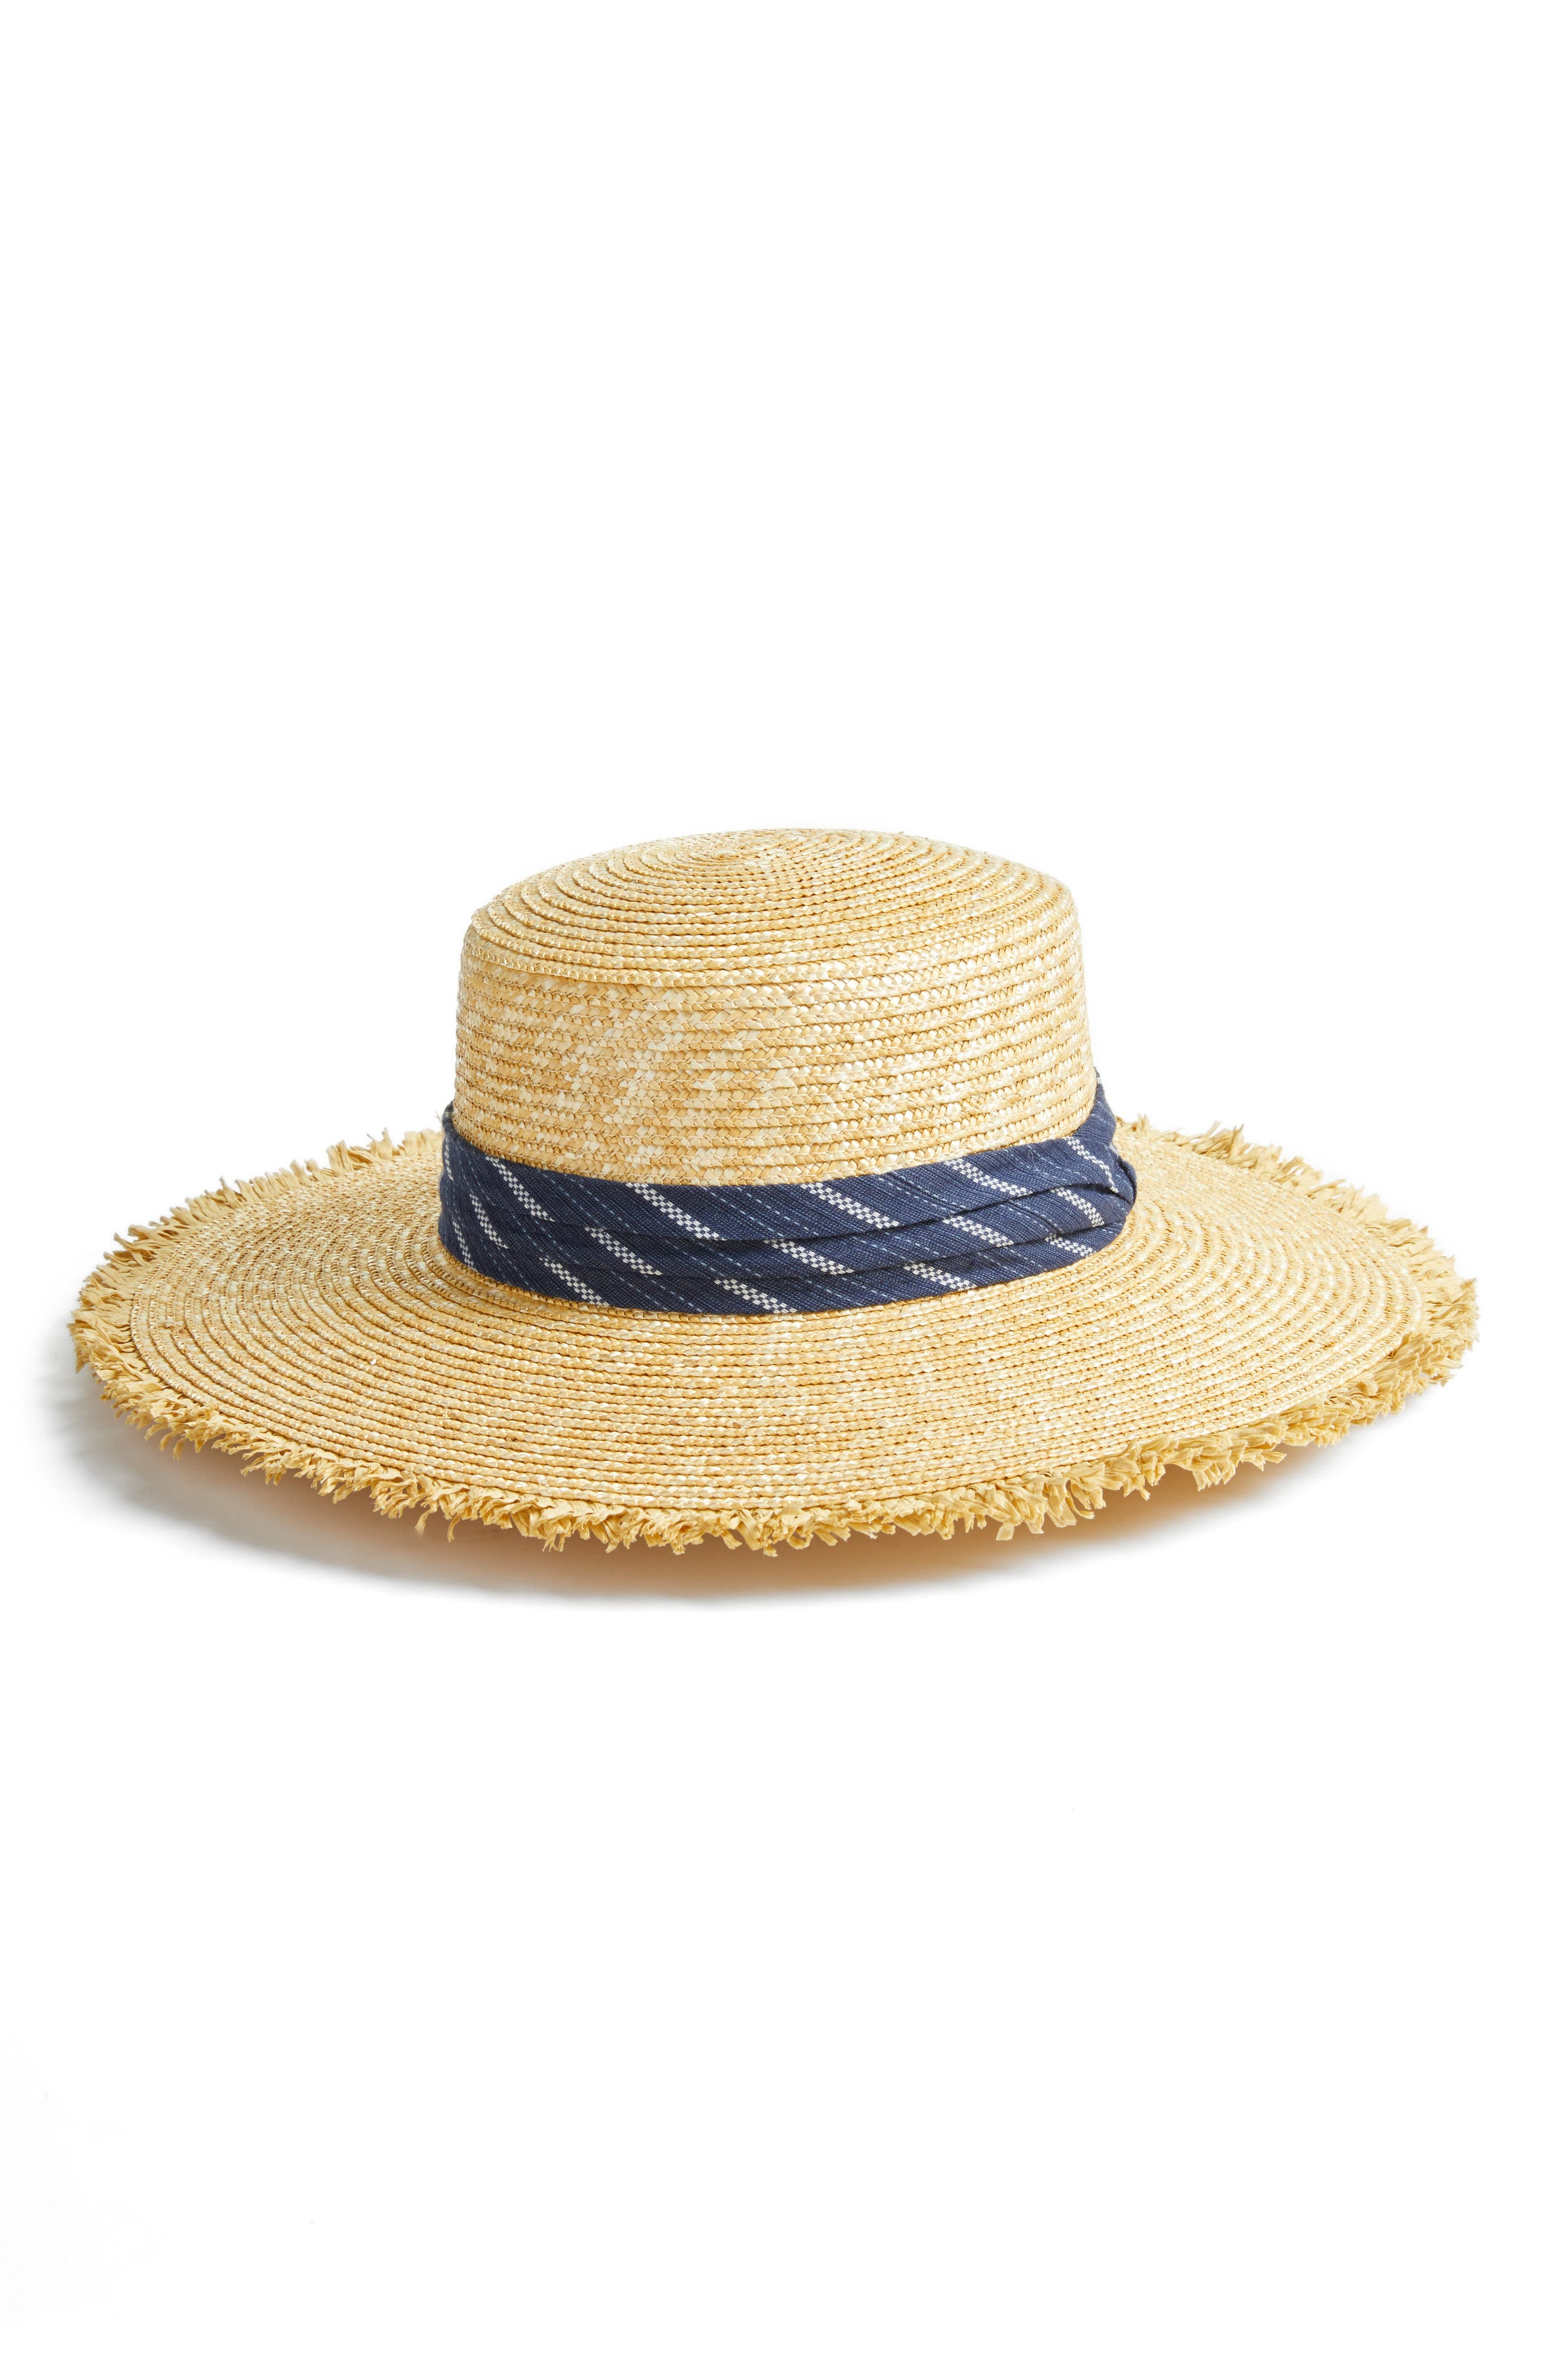 Denim Banded Straw Boater Hat,                             Main thumbnail 1, color,                             NATURAL